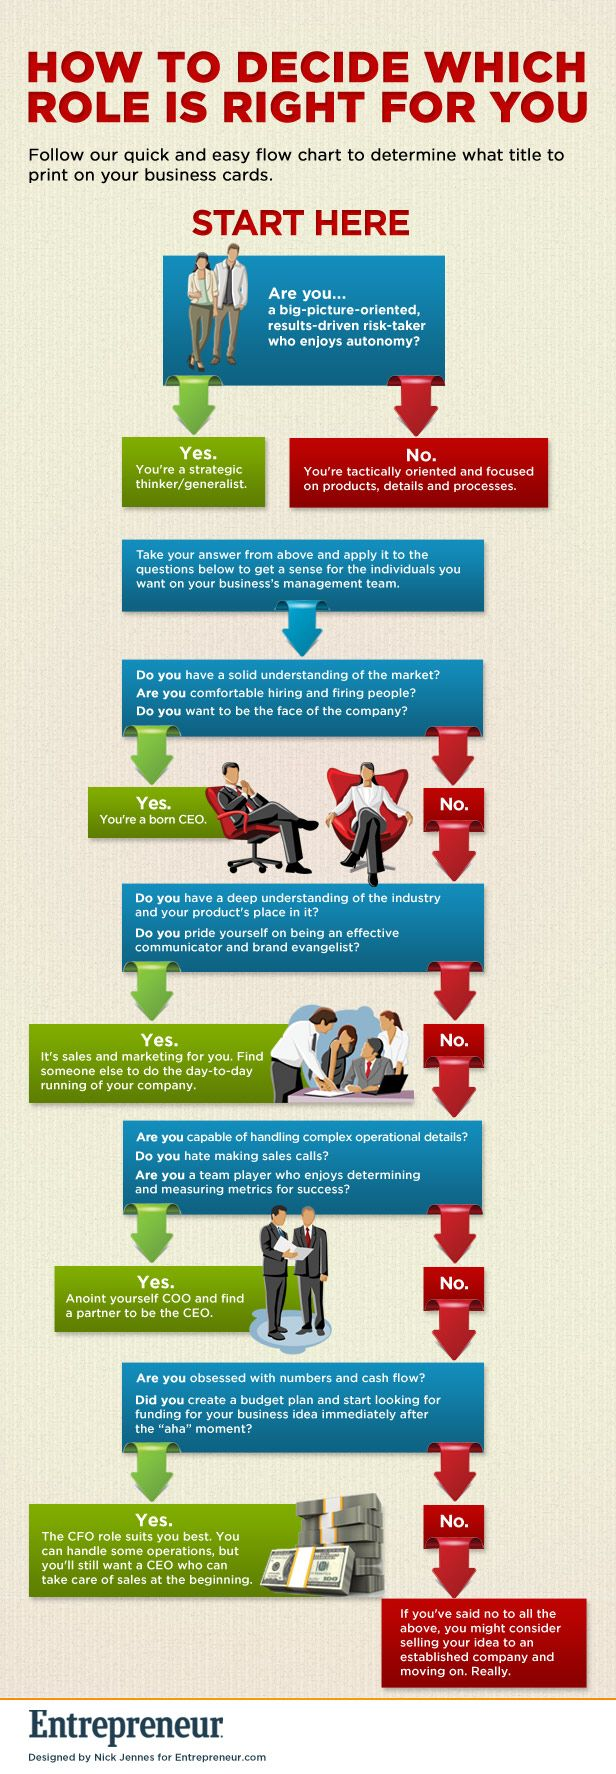 Which role is right for you?